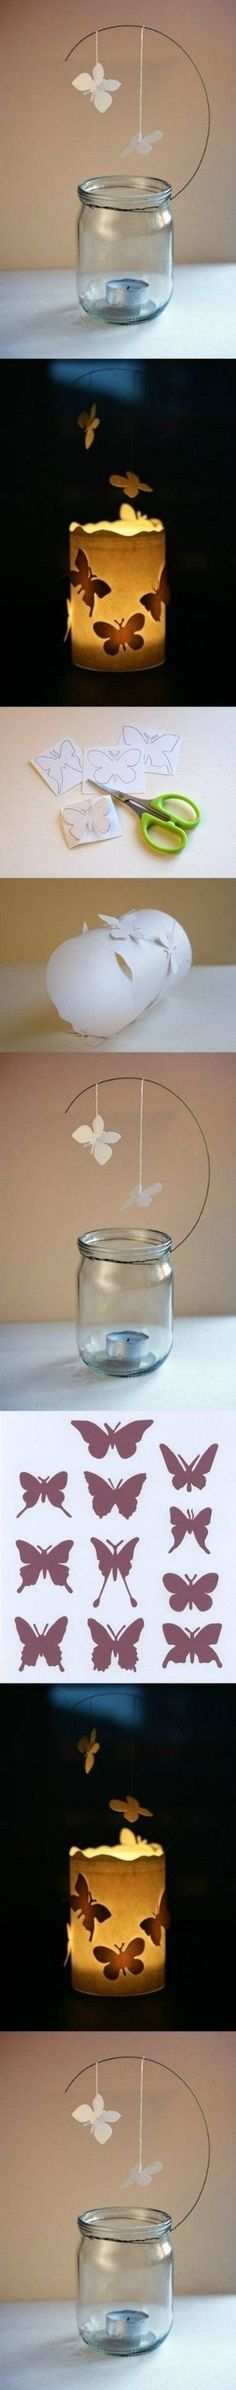 DIY Butterfly Candle Decor